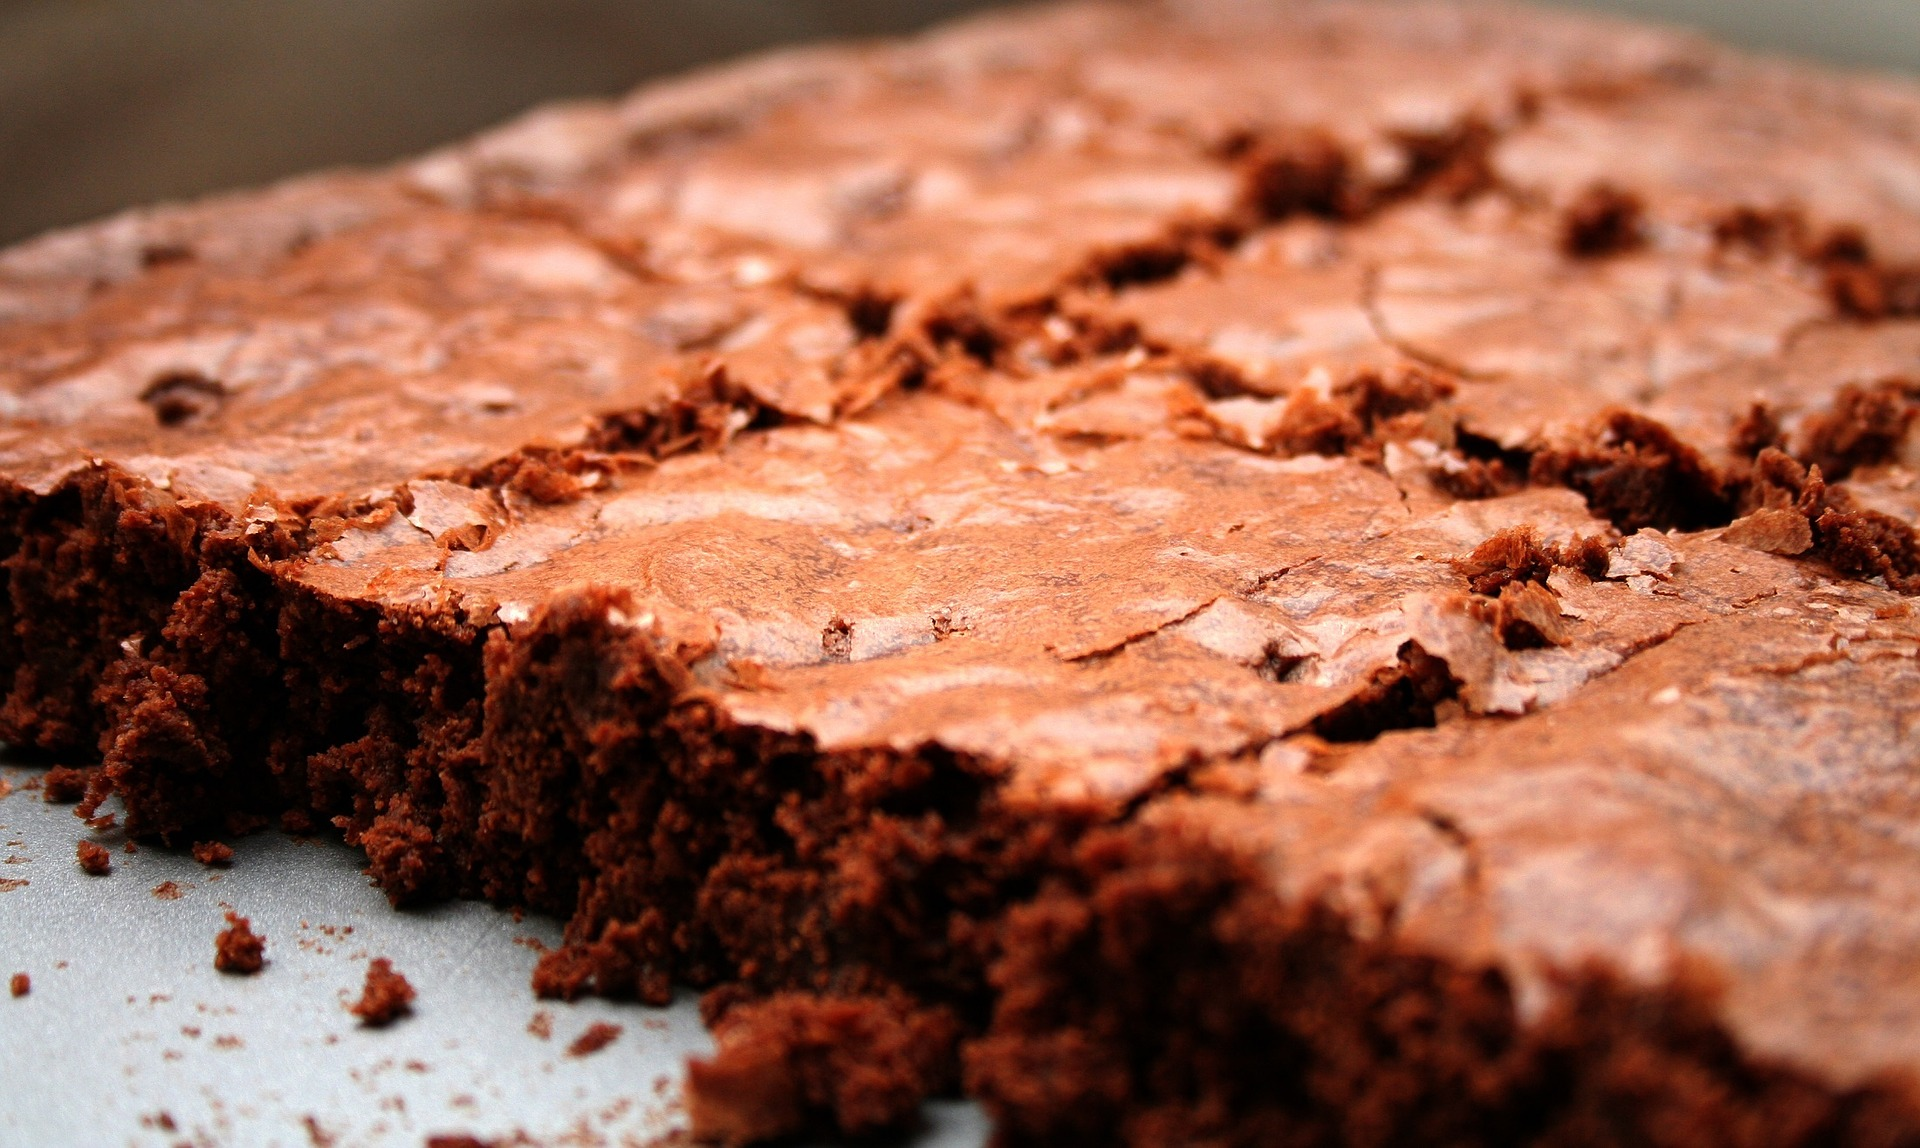 how to make pot brownies the easy way herb experts